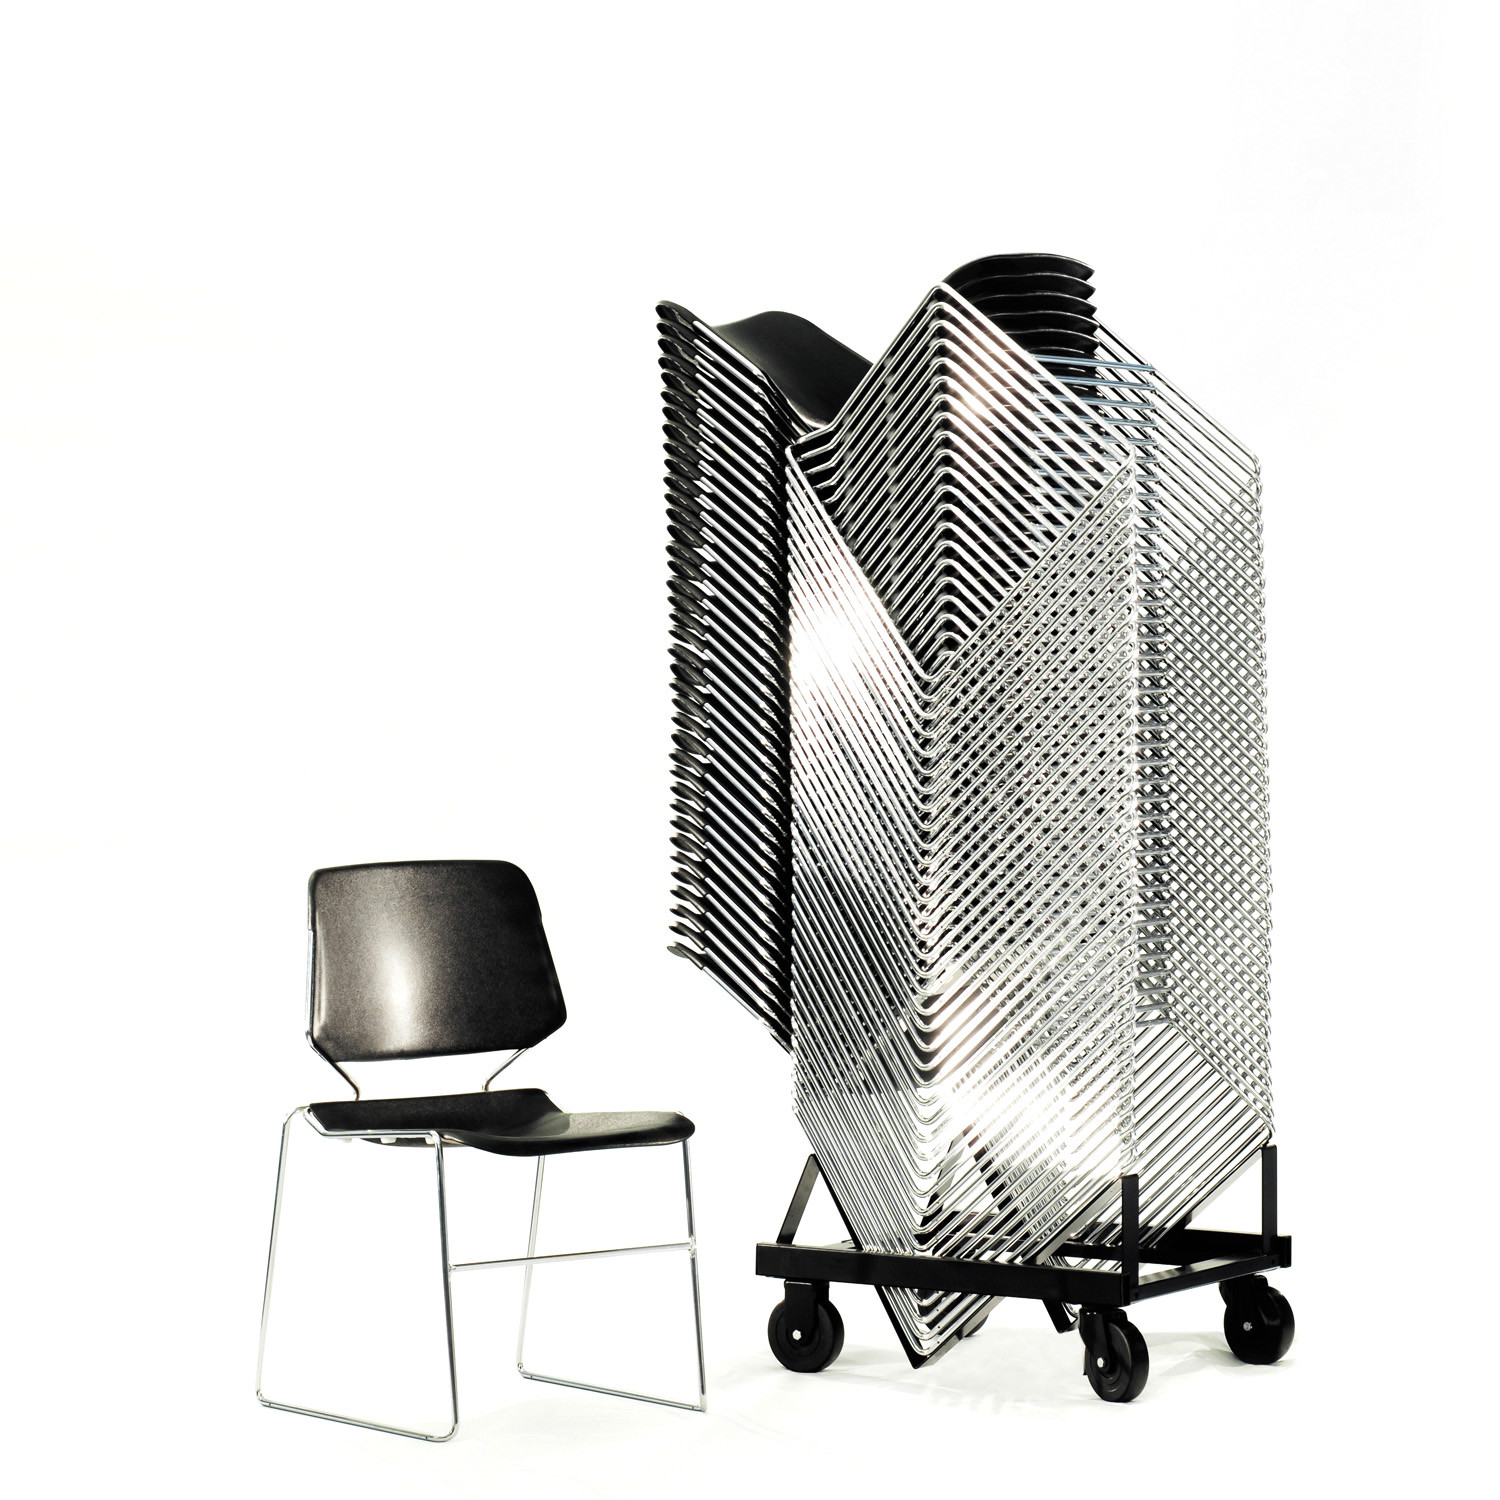 Matrix Stackable Chairs